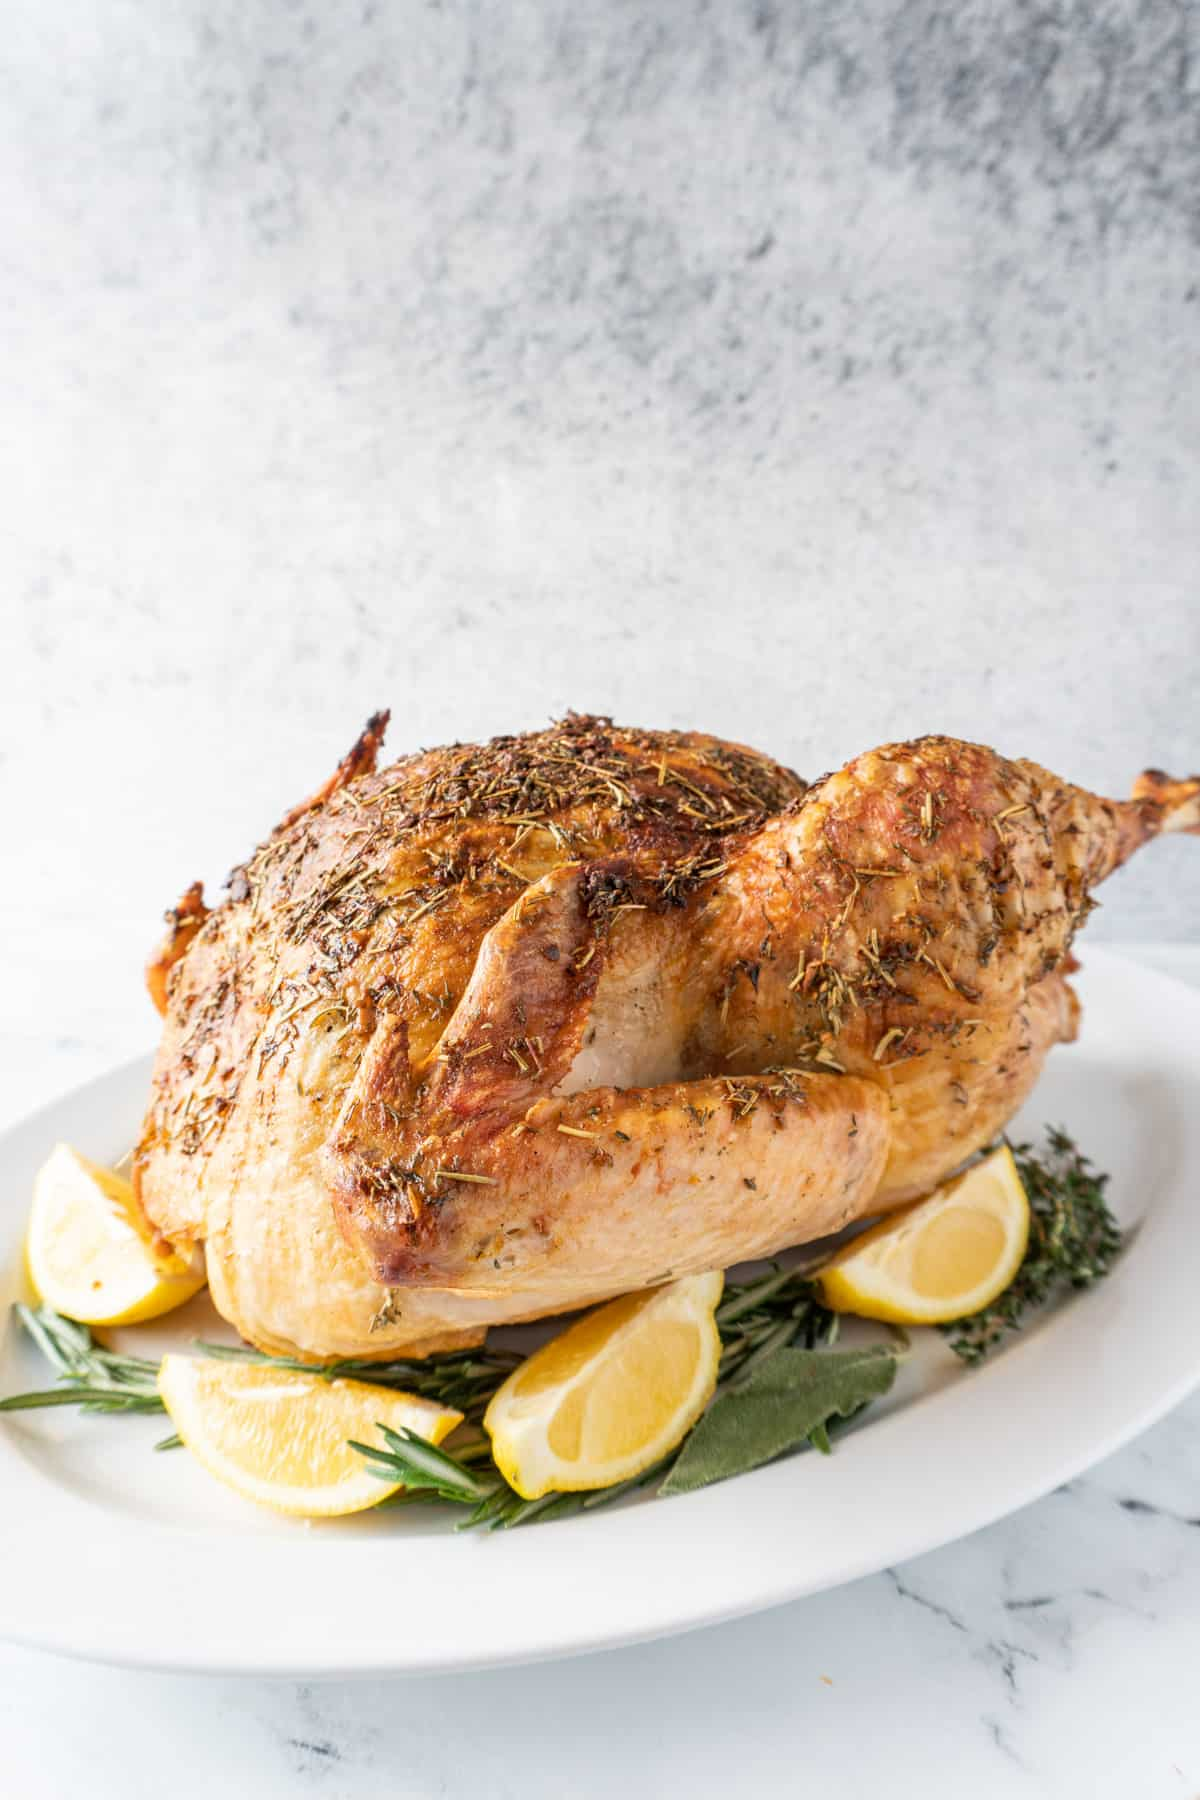 baked turkey on platter with lemon and sage leaves around it